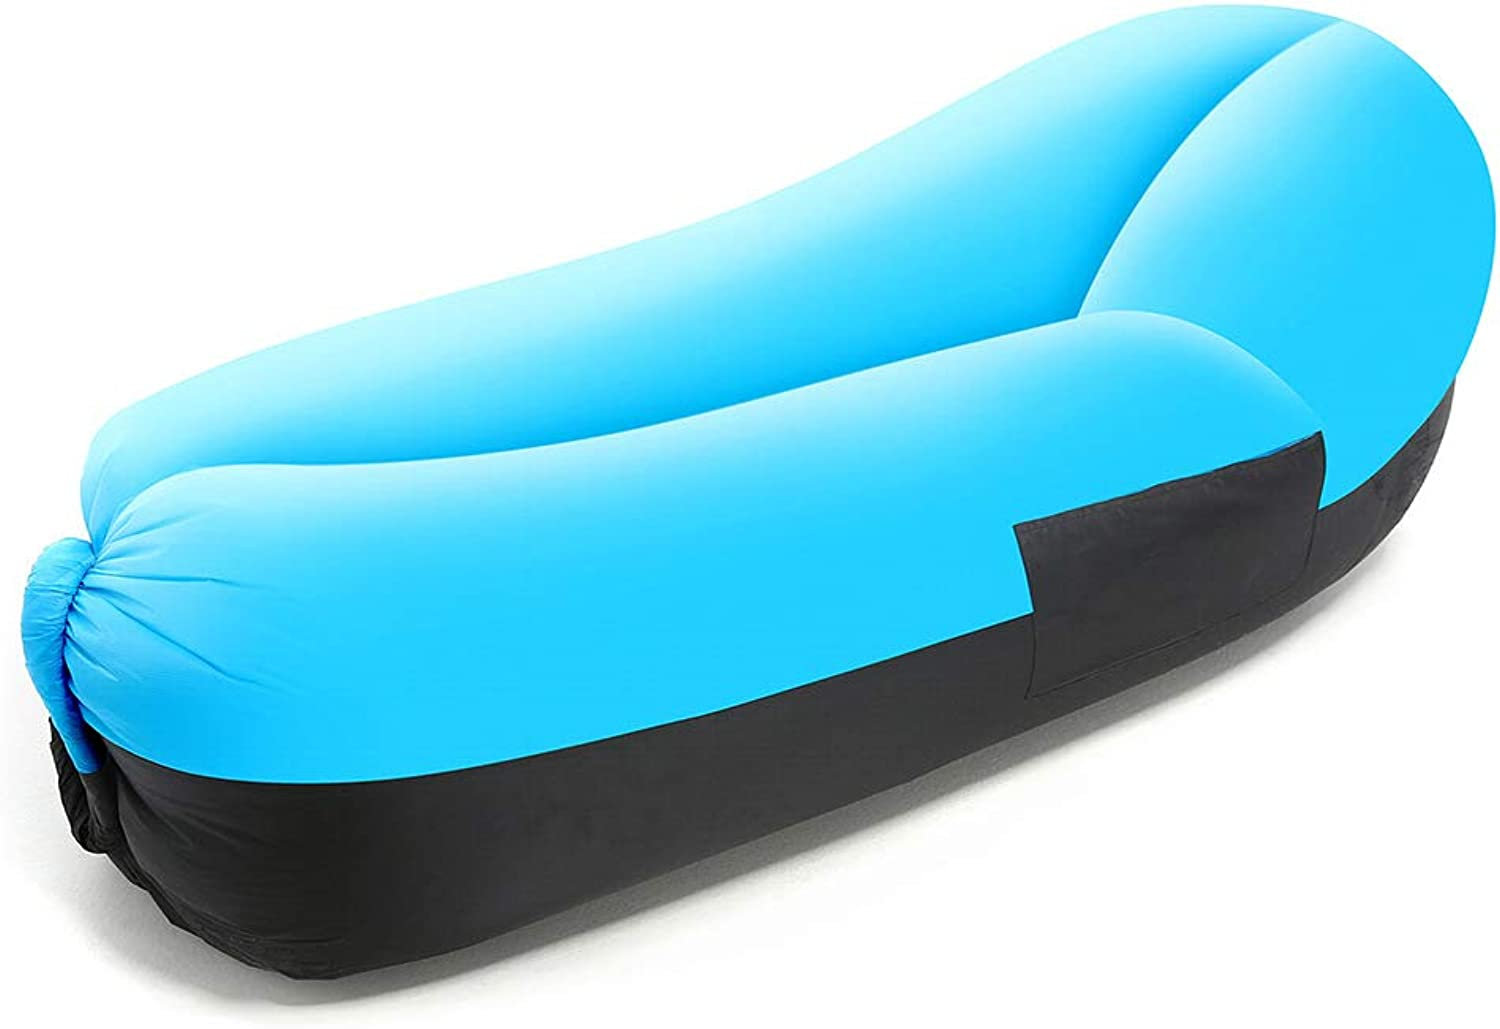 Inflatable Lounger Easy Setup Waterproof Air Lounger with Thicker Fabric, Blow Up Couch Tear-Resistant with Bottle Holder for Camping, Beach, Park, Pool, Picnics (200KG Support)